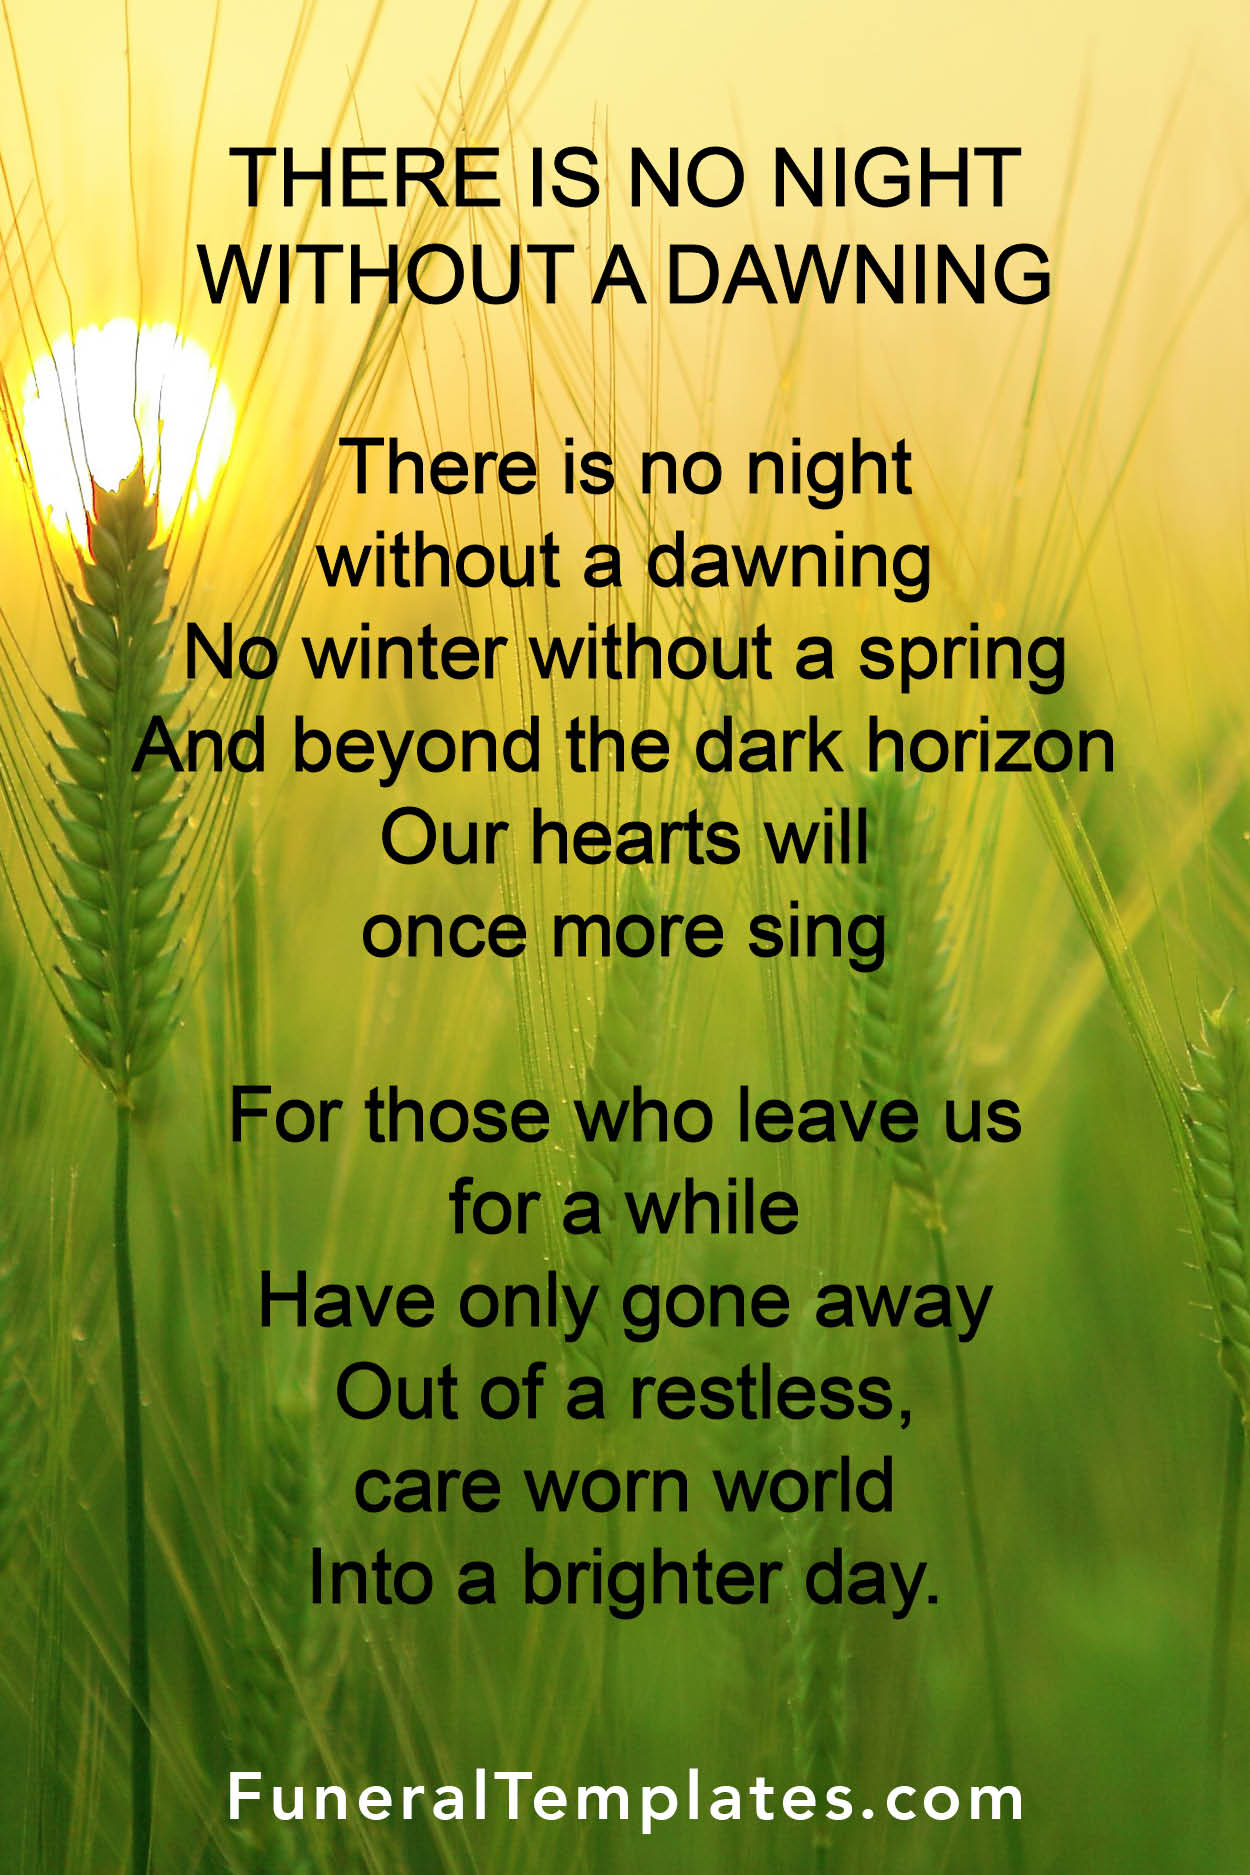 Funeral poem - There is no night without a dawning | funeraltemplates.com